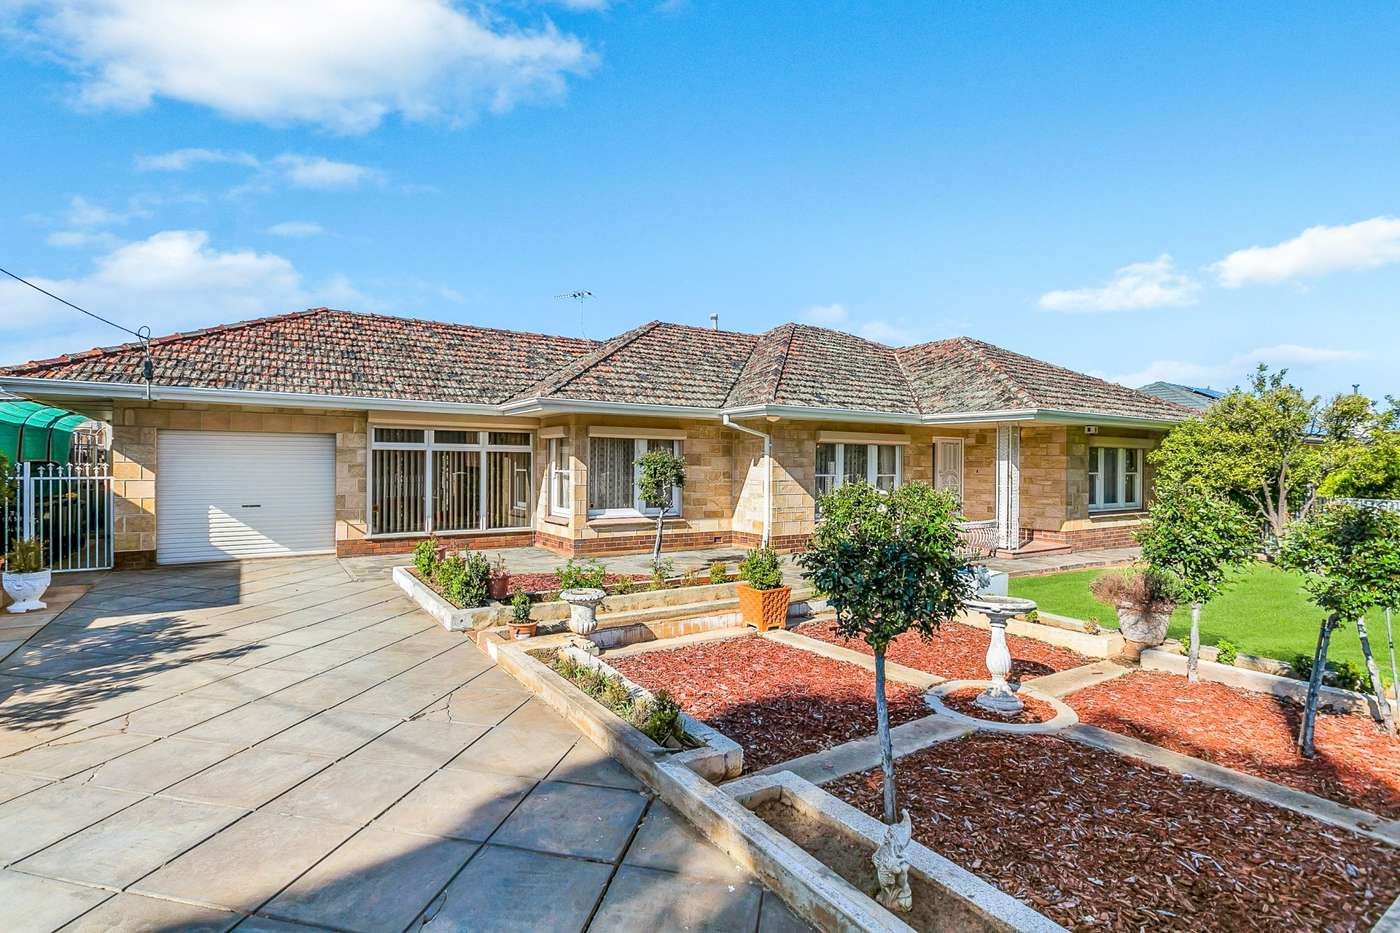 Main view of Homely house listing, 32 Castres Street, Glynde, SA 5070